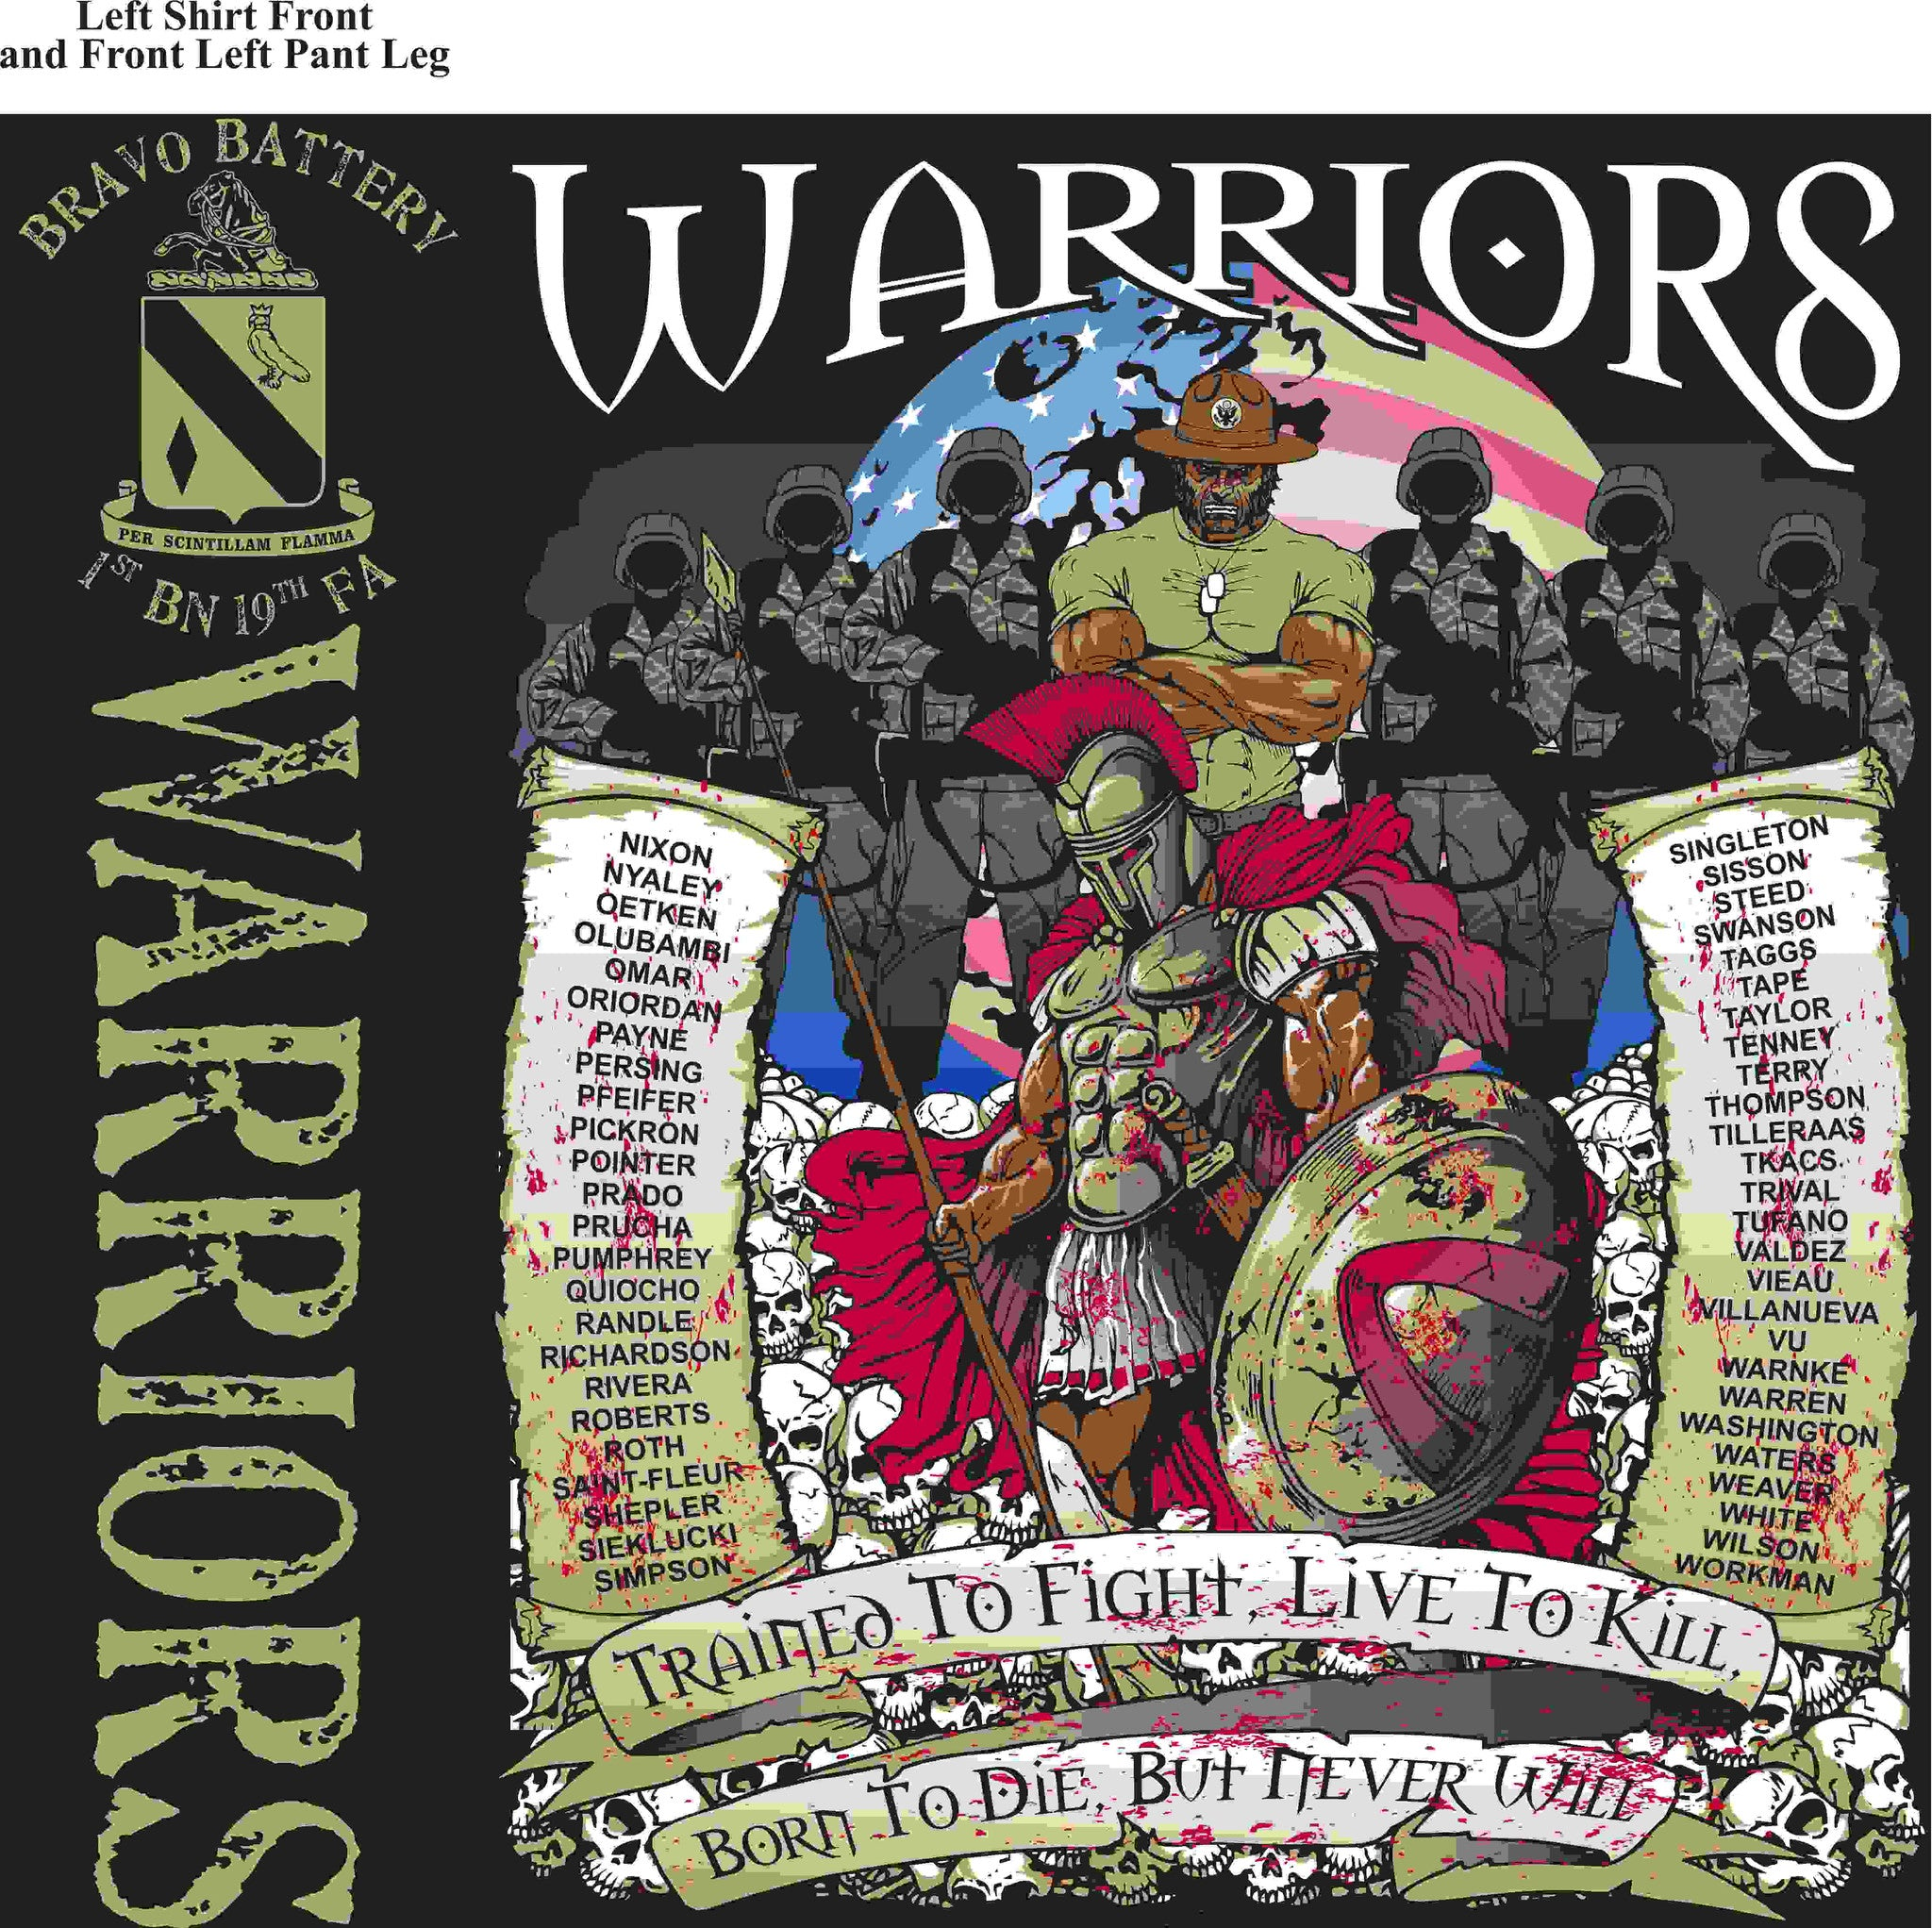 PLATOON SHIRTS (digital) BRAVO 1st 19th WARRIORS FEB 2016